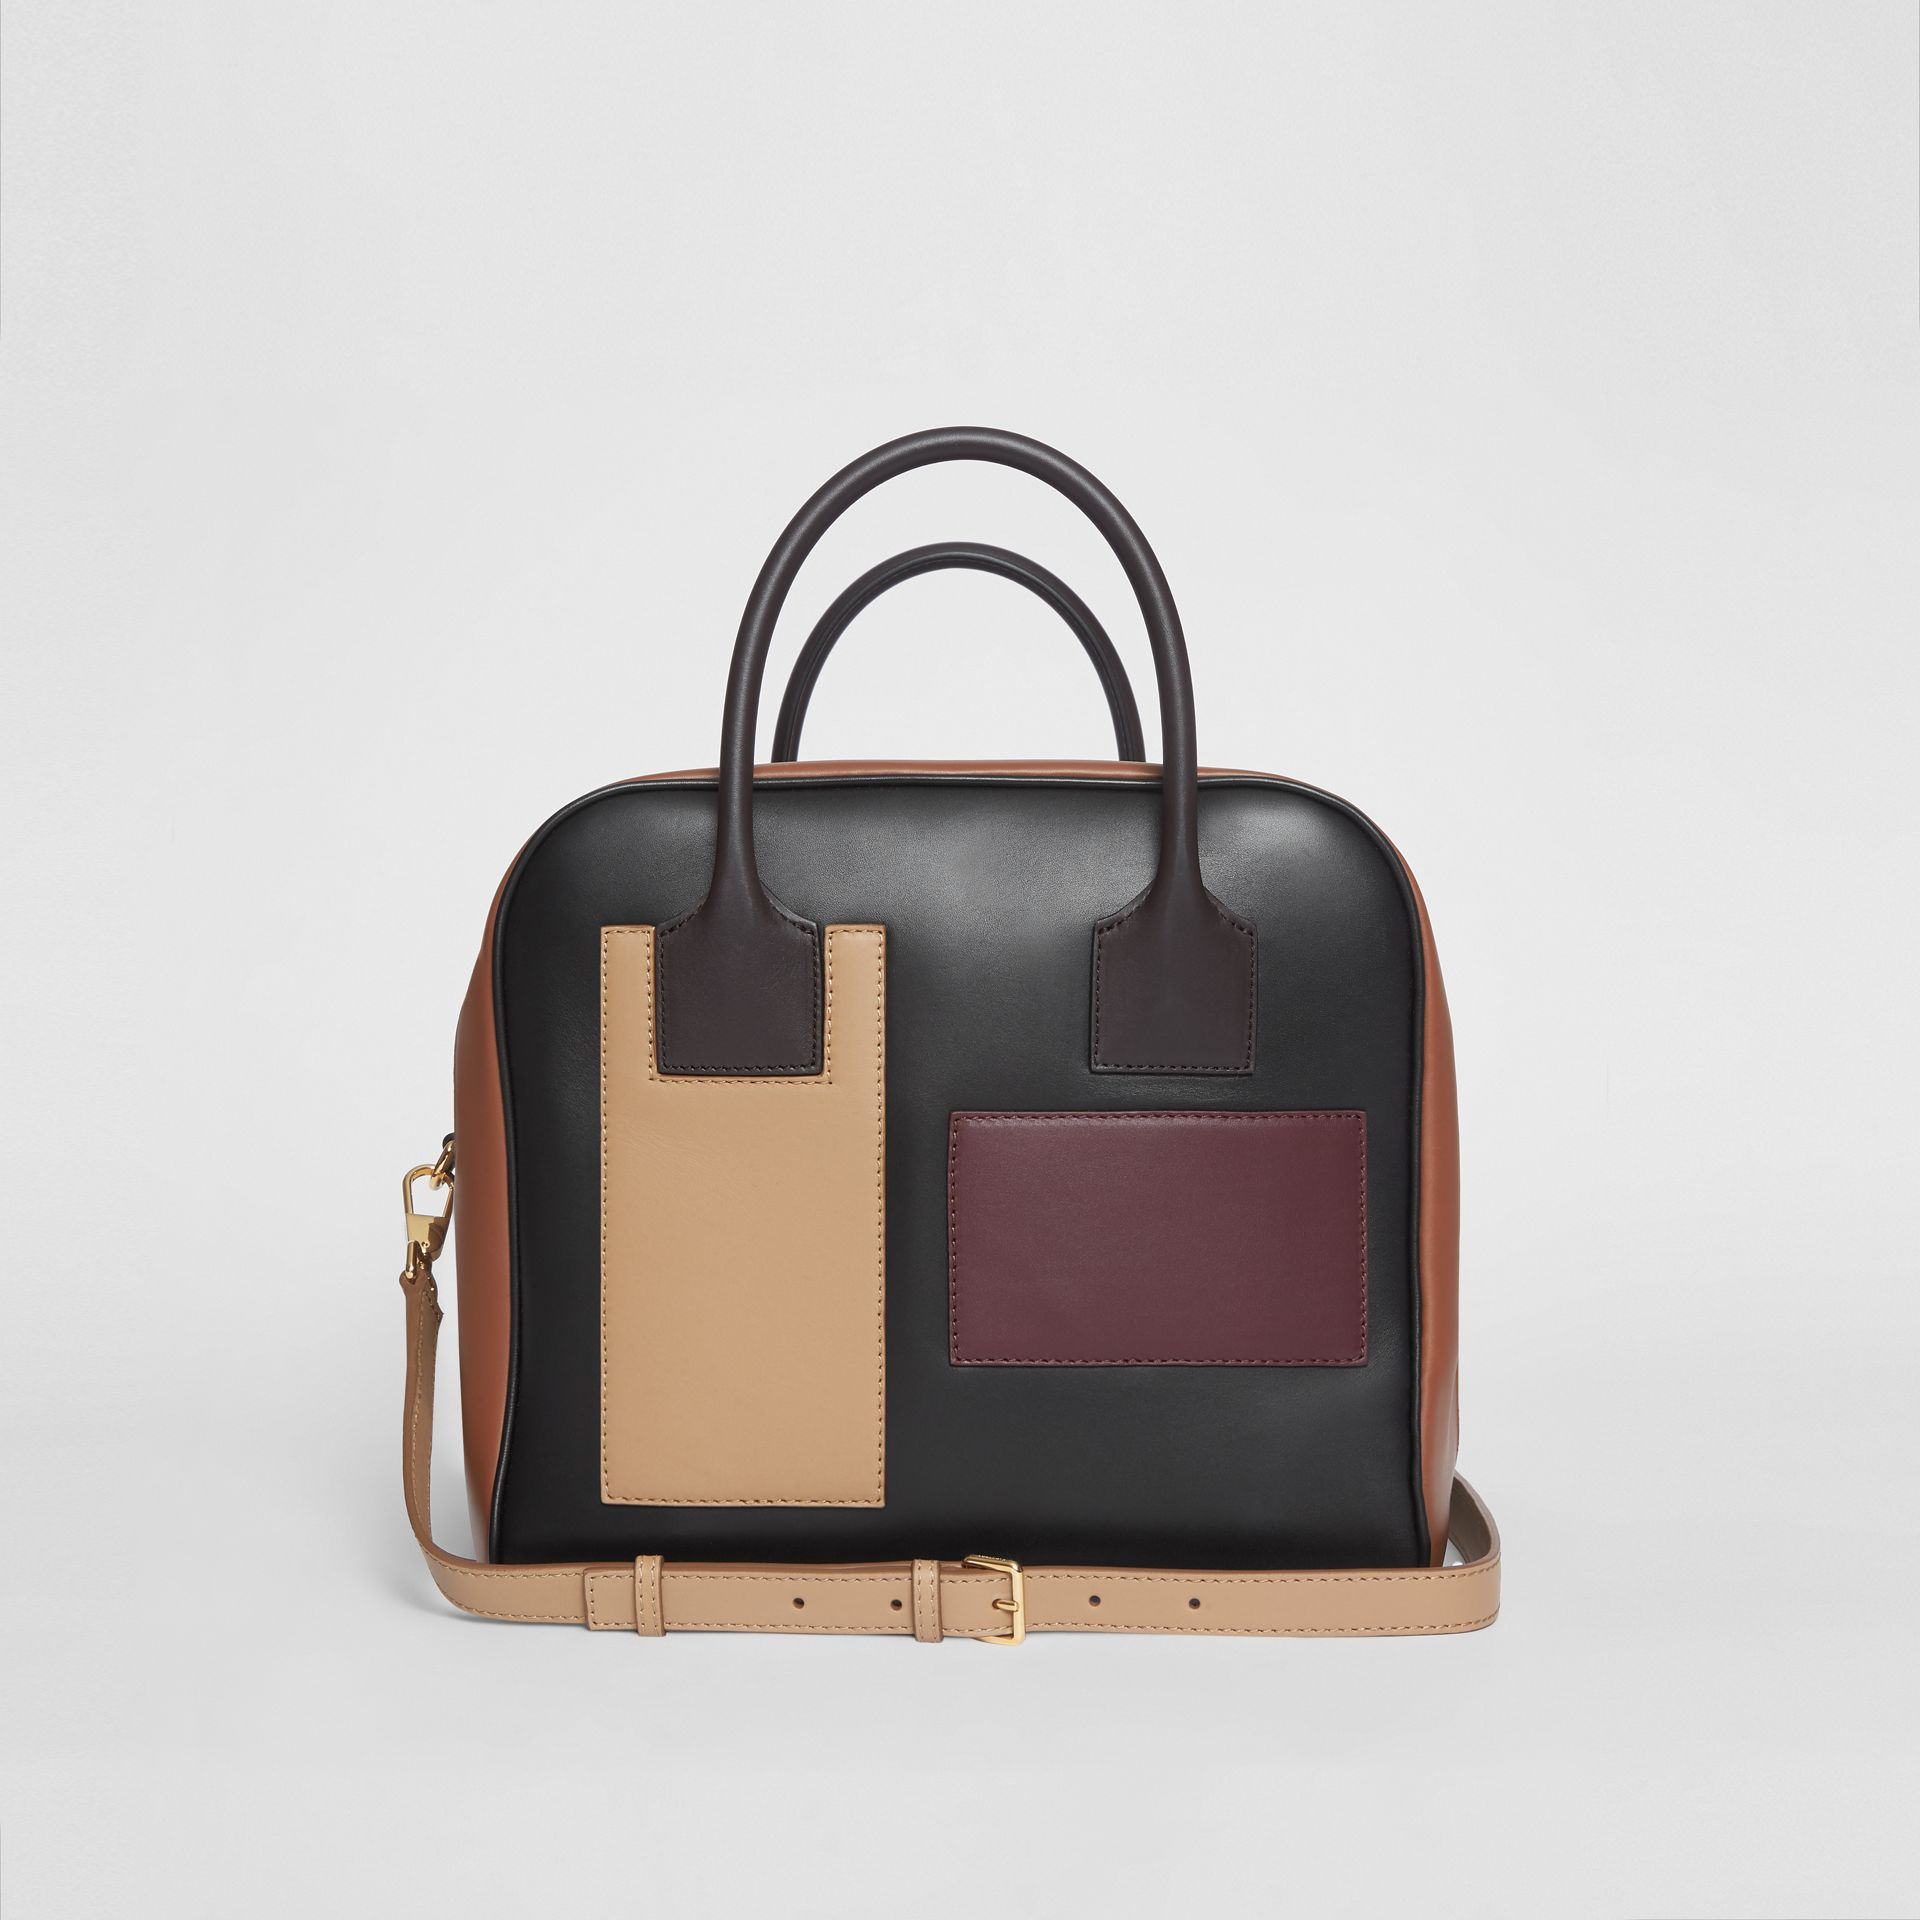 Medium Panelled Leather Cube Bag in Black - Women | Burberry United Kingdom - gallery image 7